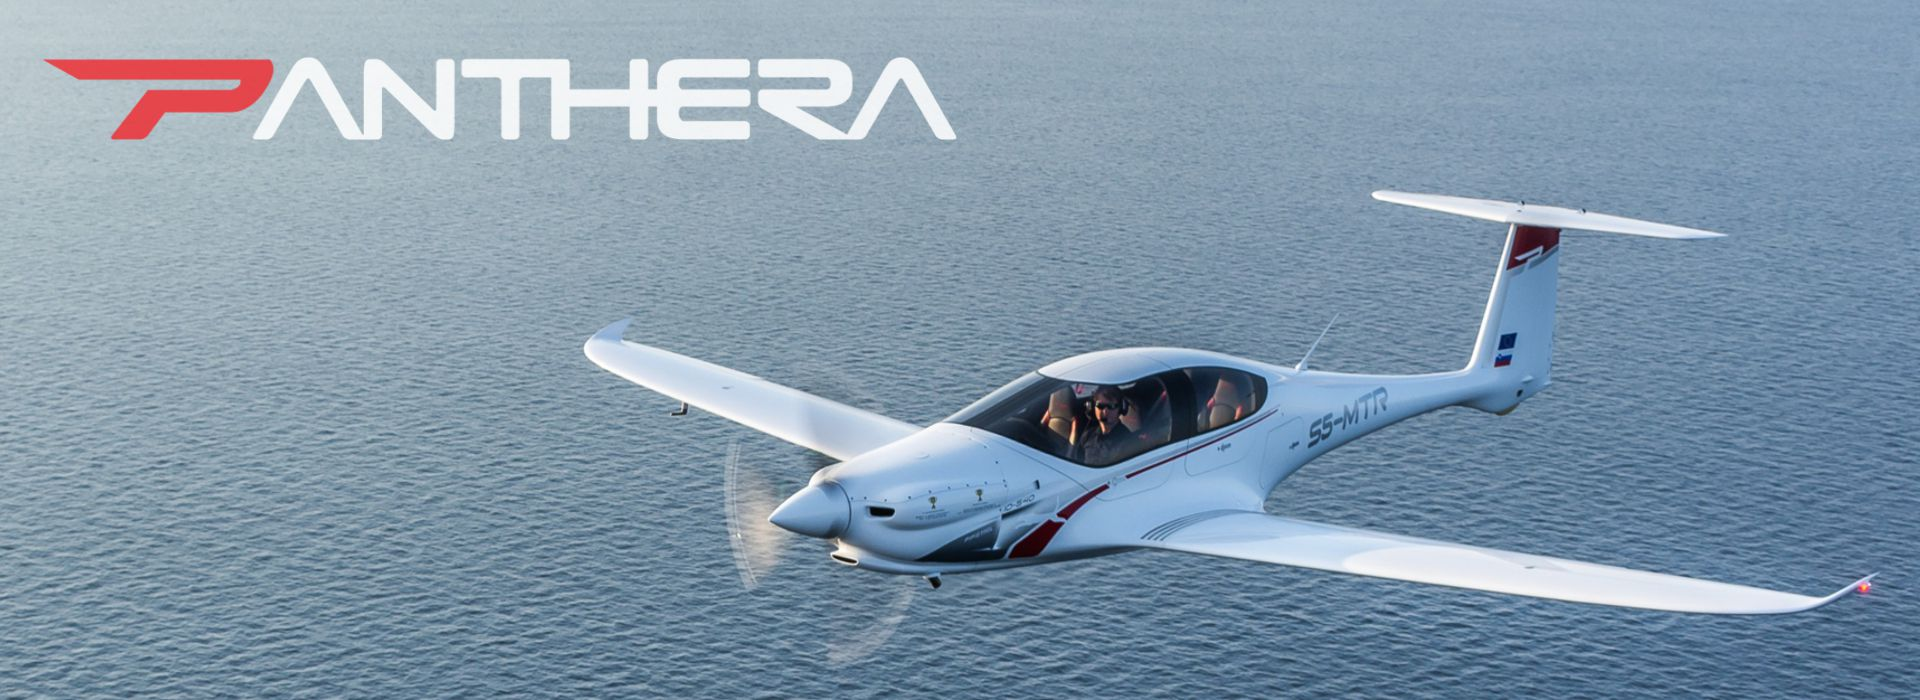 panthera pipistrel aircraft